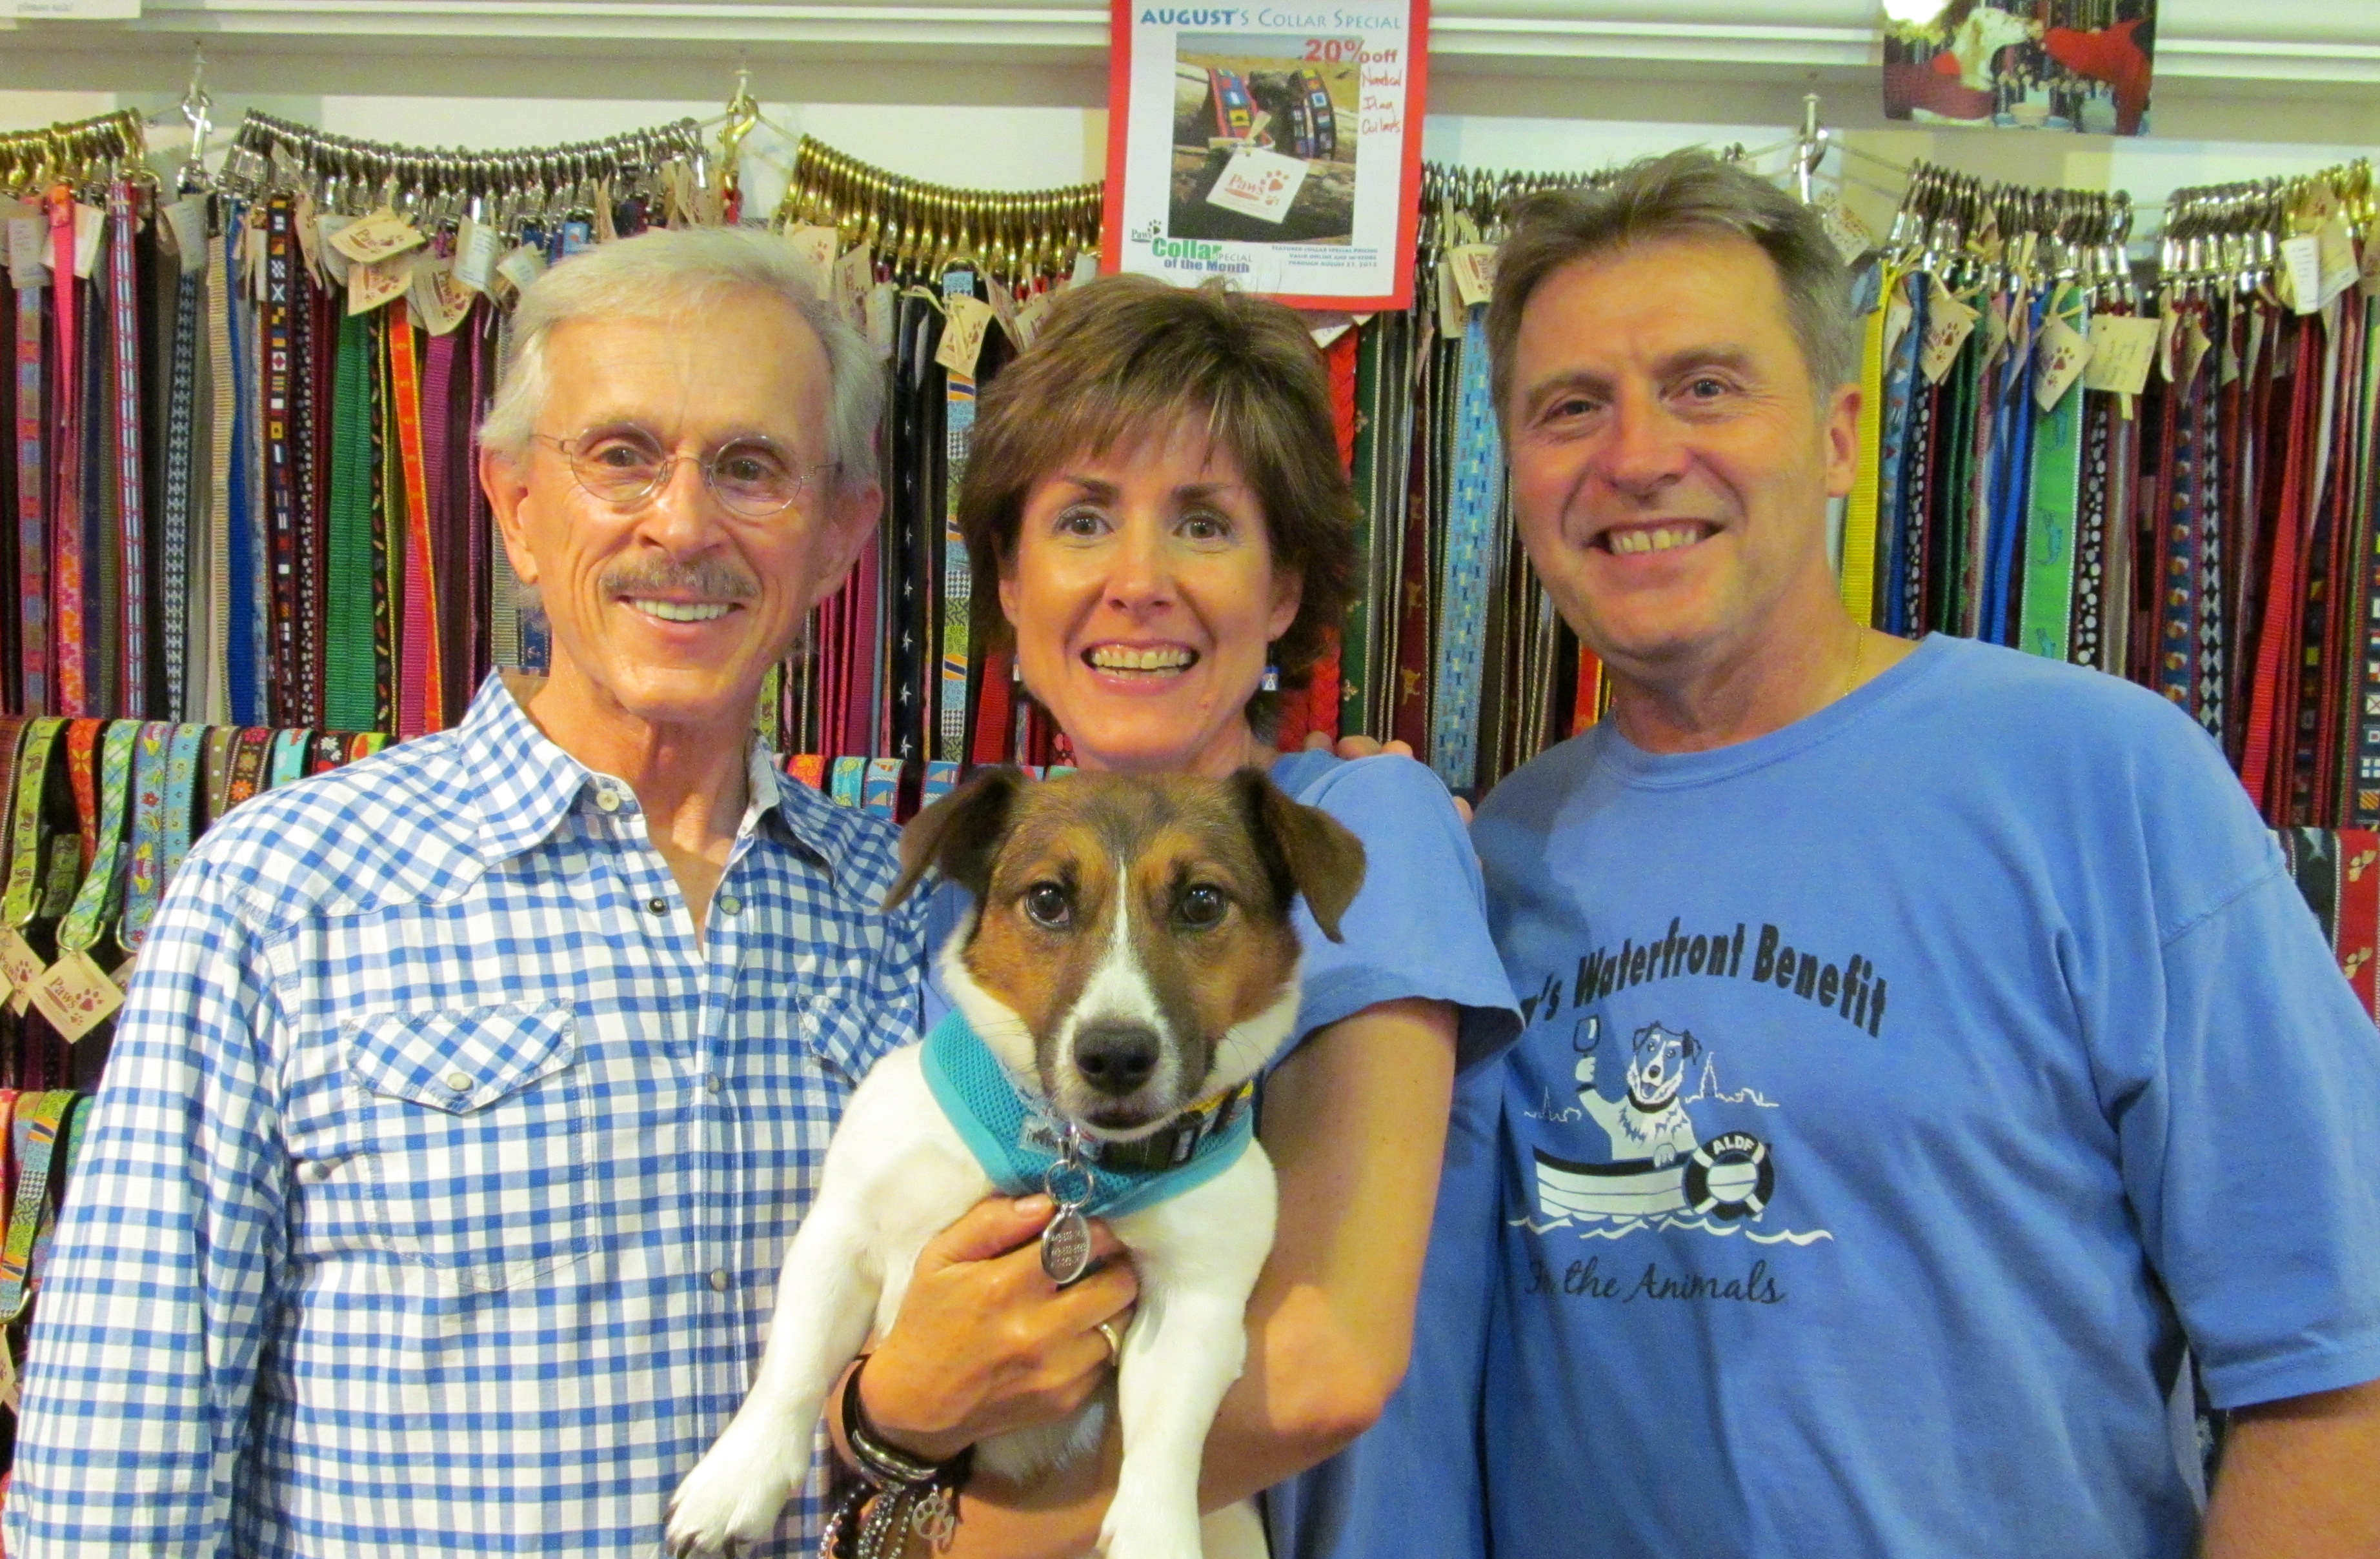 Dick of The Smothers comes to Paws pet boutique